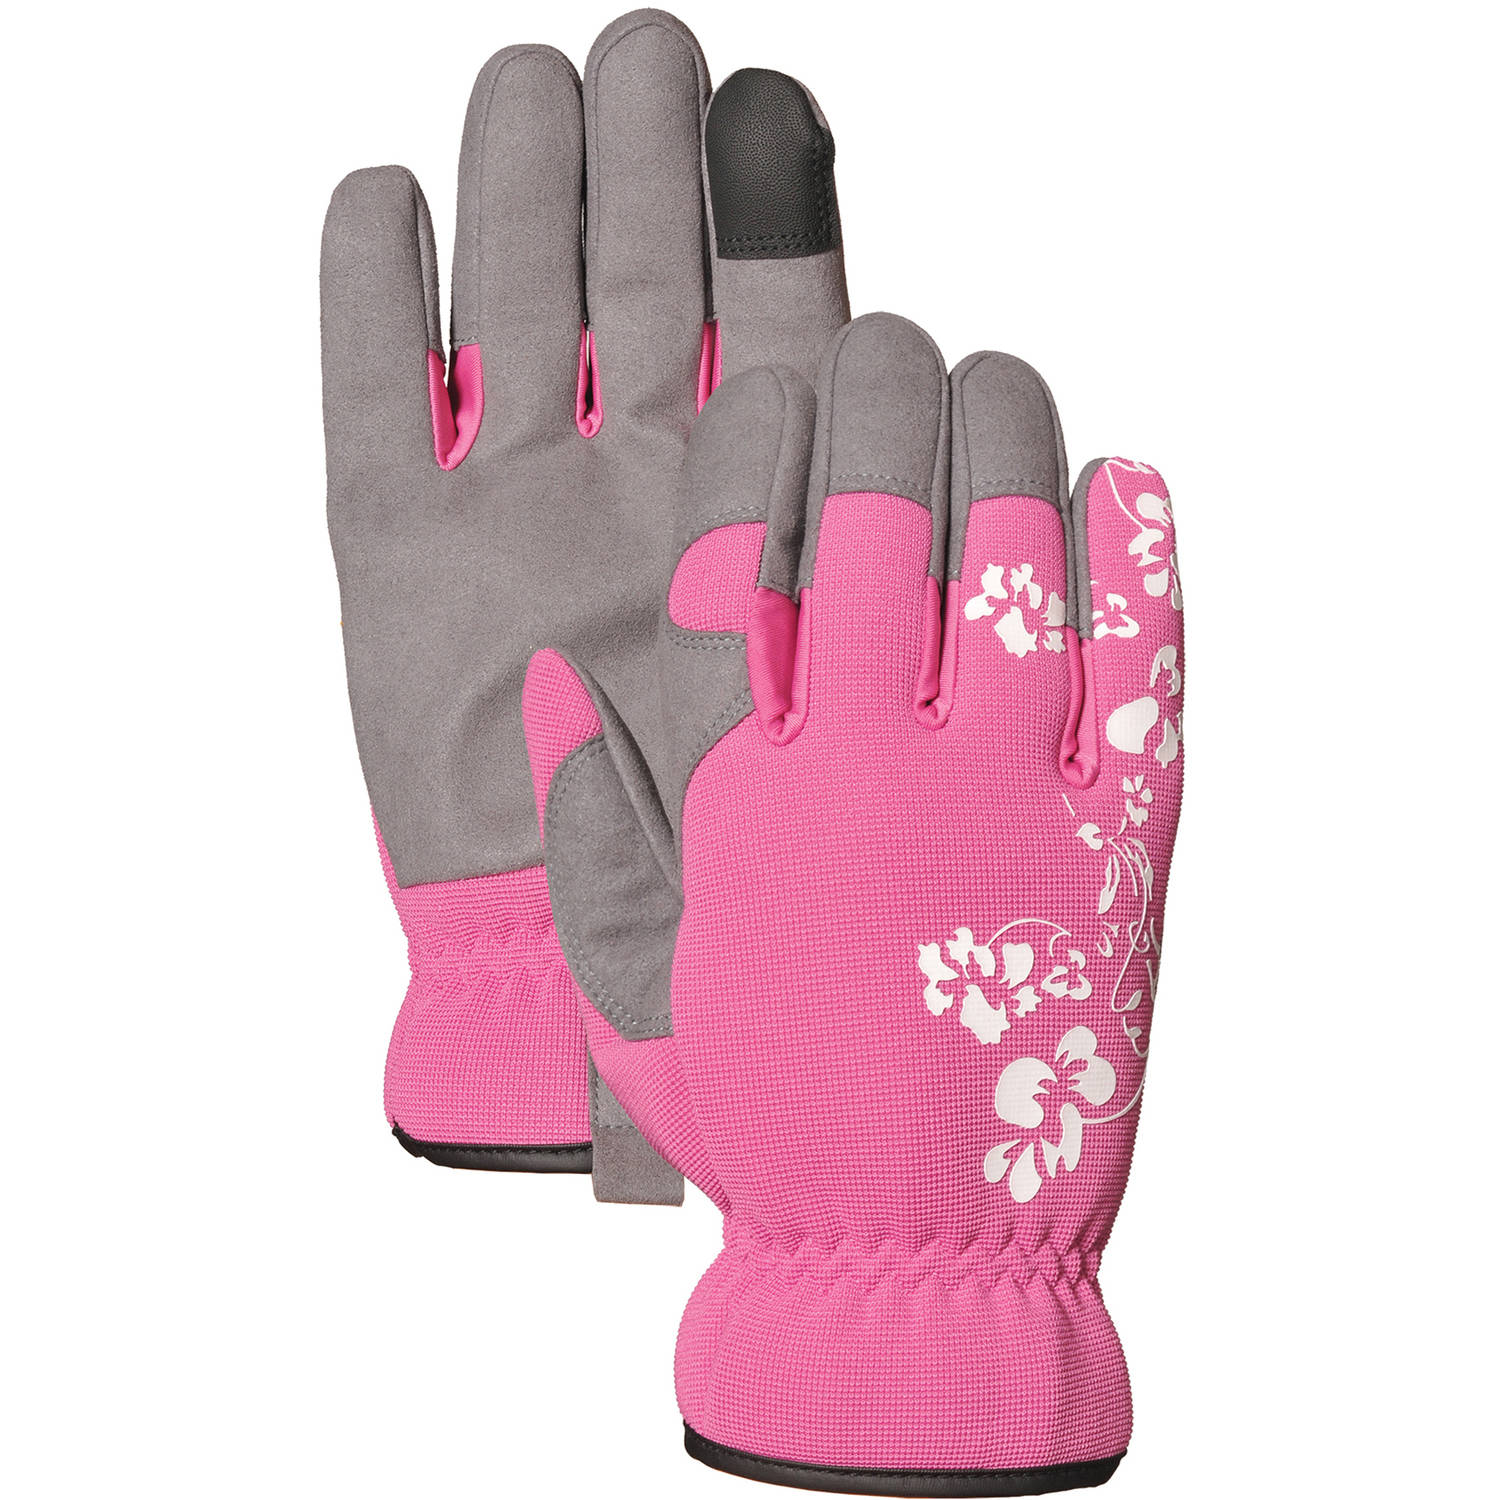 Bellingham Glove C7333M Medium Floral Women's Performance Glove